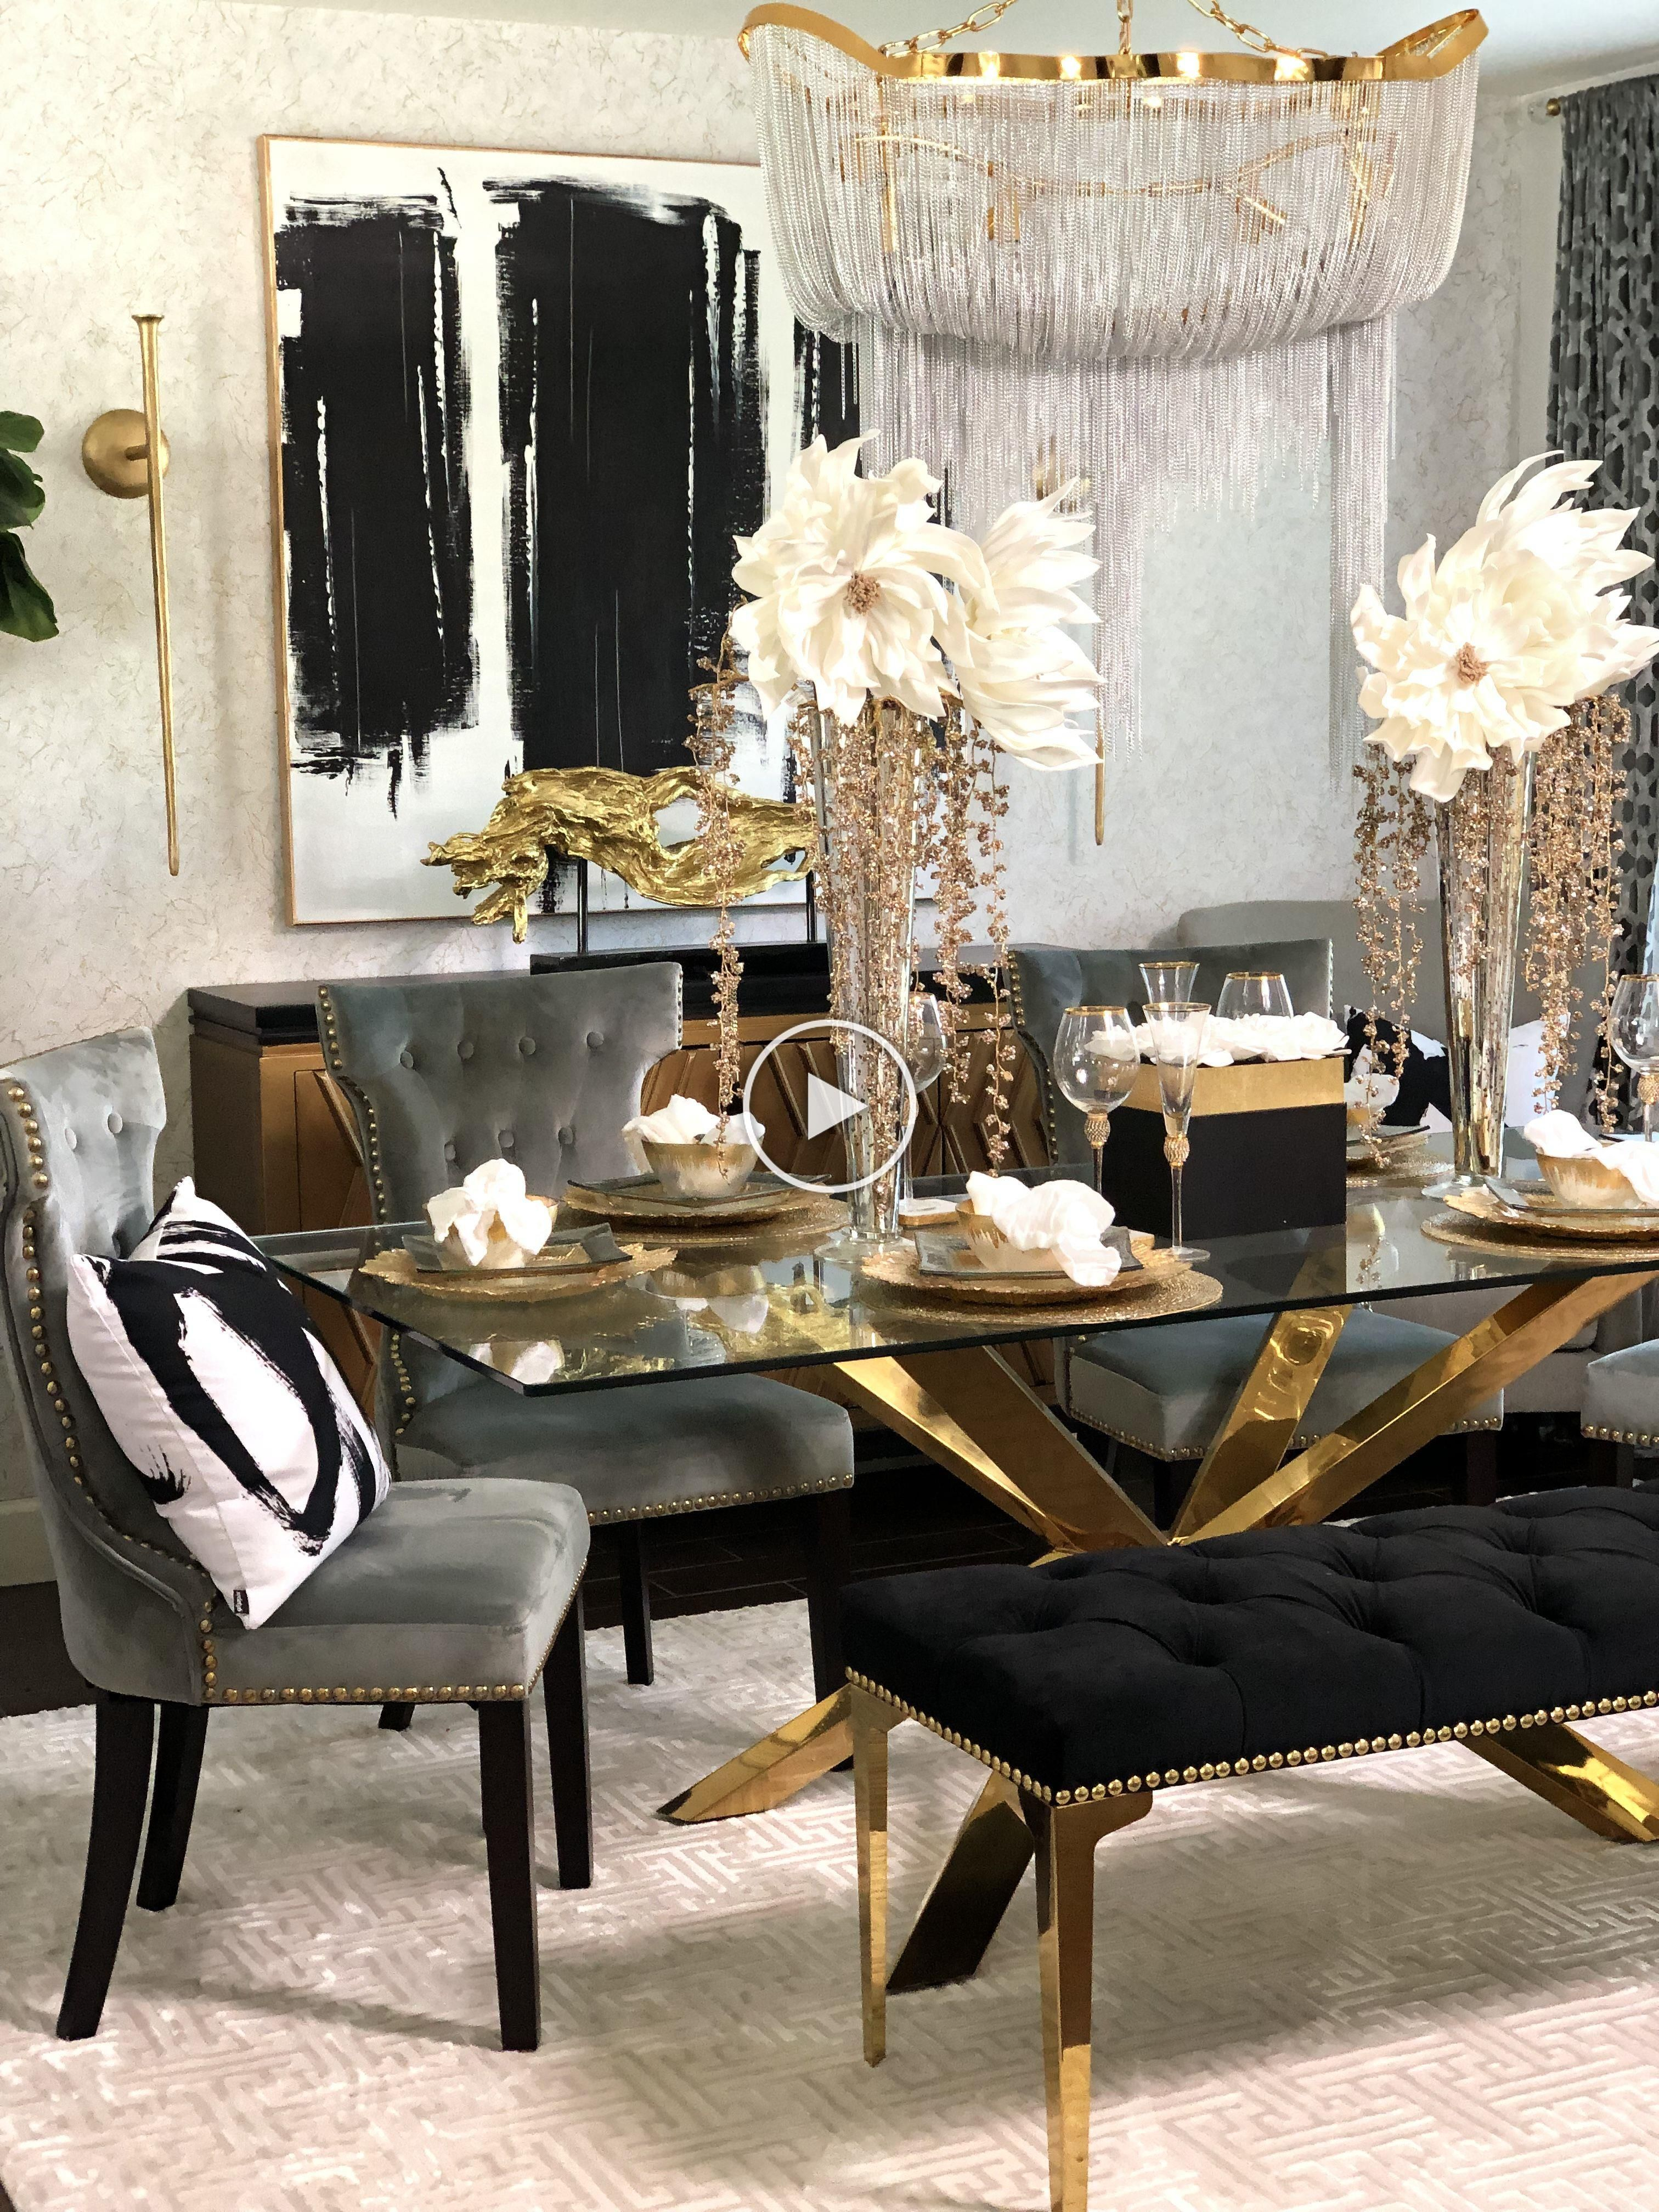 Pin By Rae Parker On Dine In Gold Dining Room Luxury Dining Room Dining Room Glam